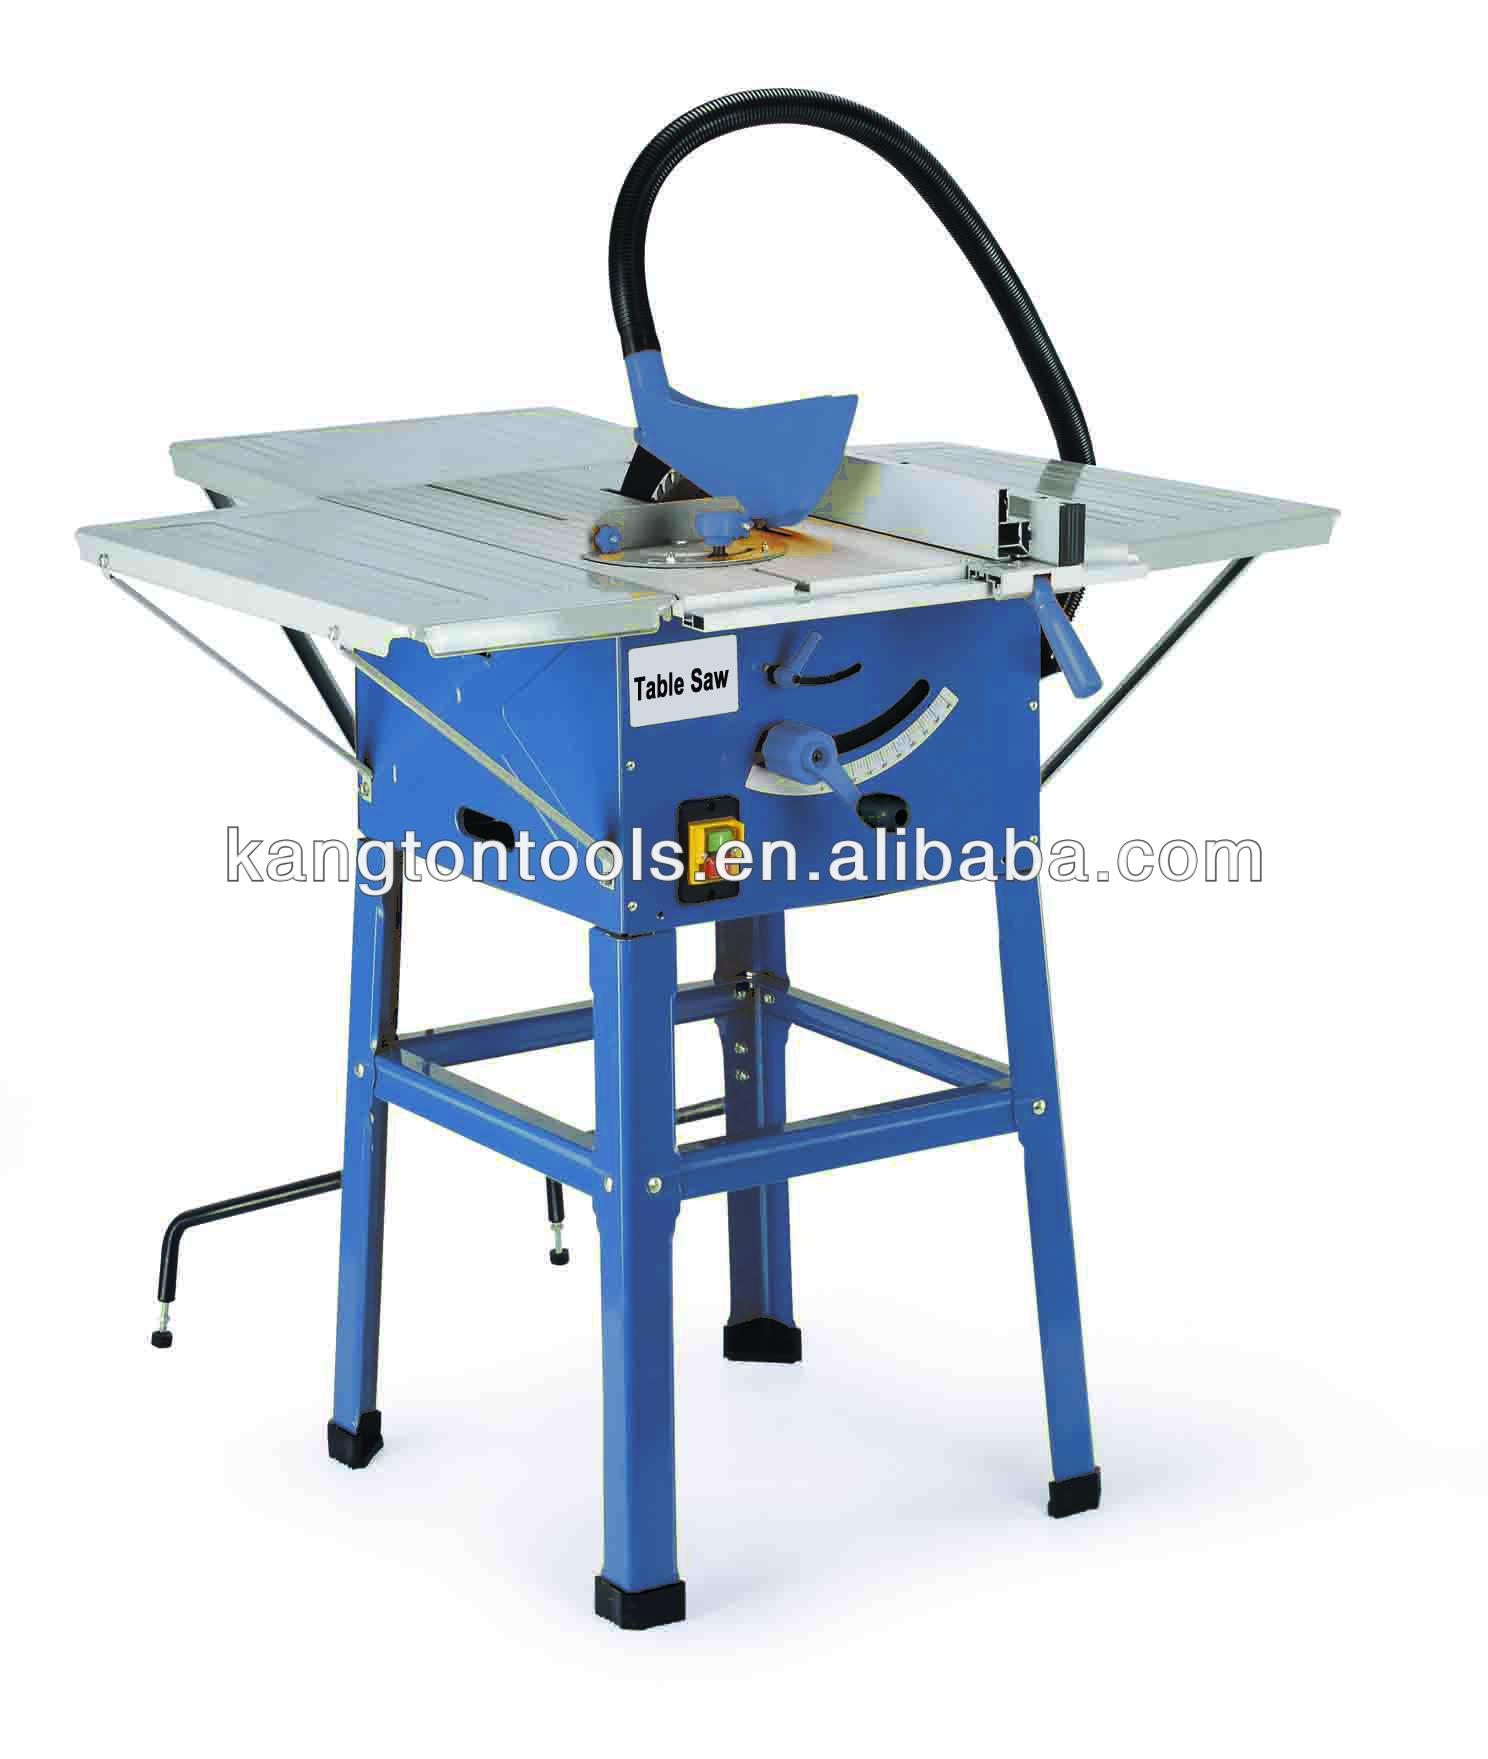 Compound miter saw table saw